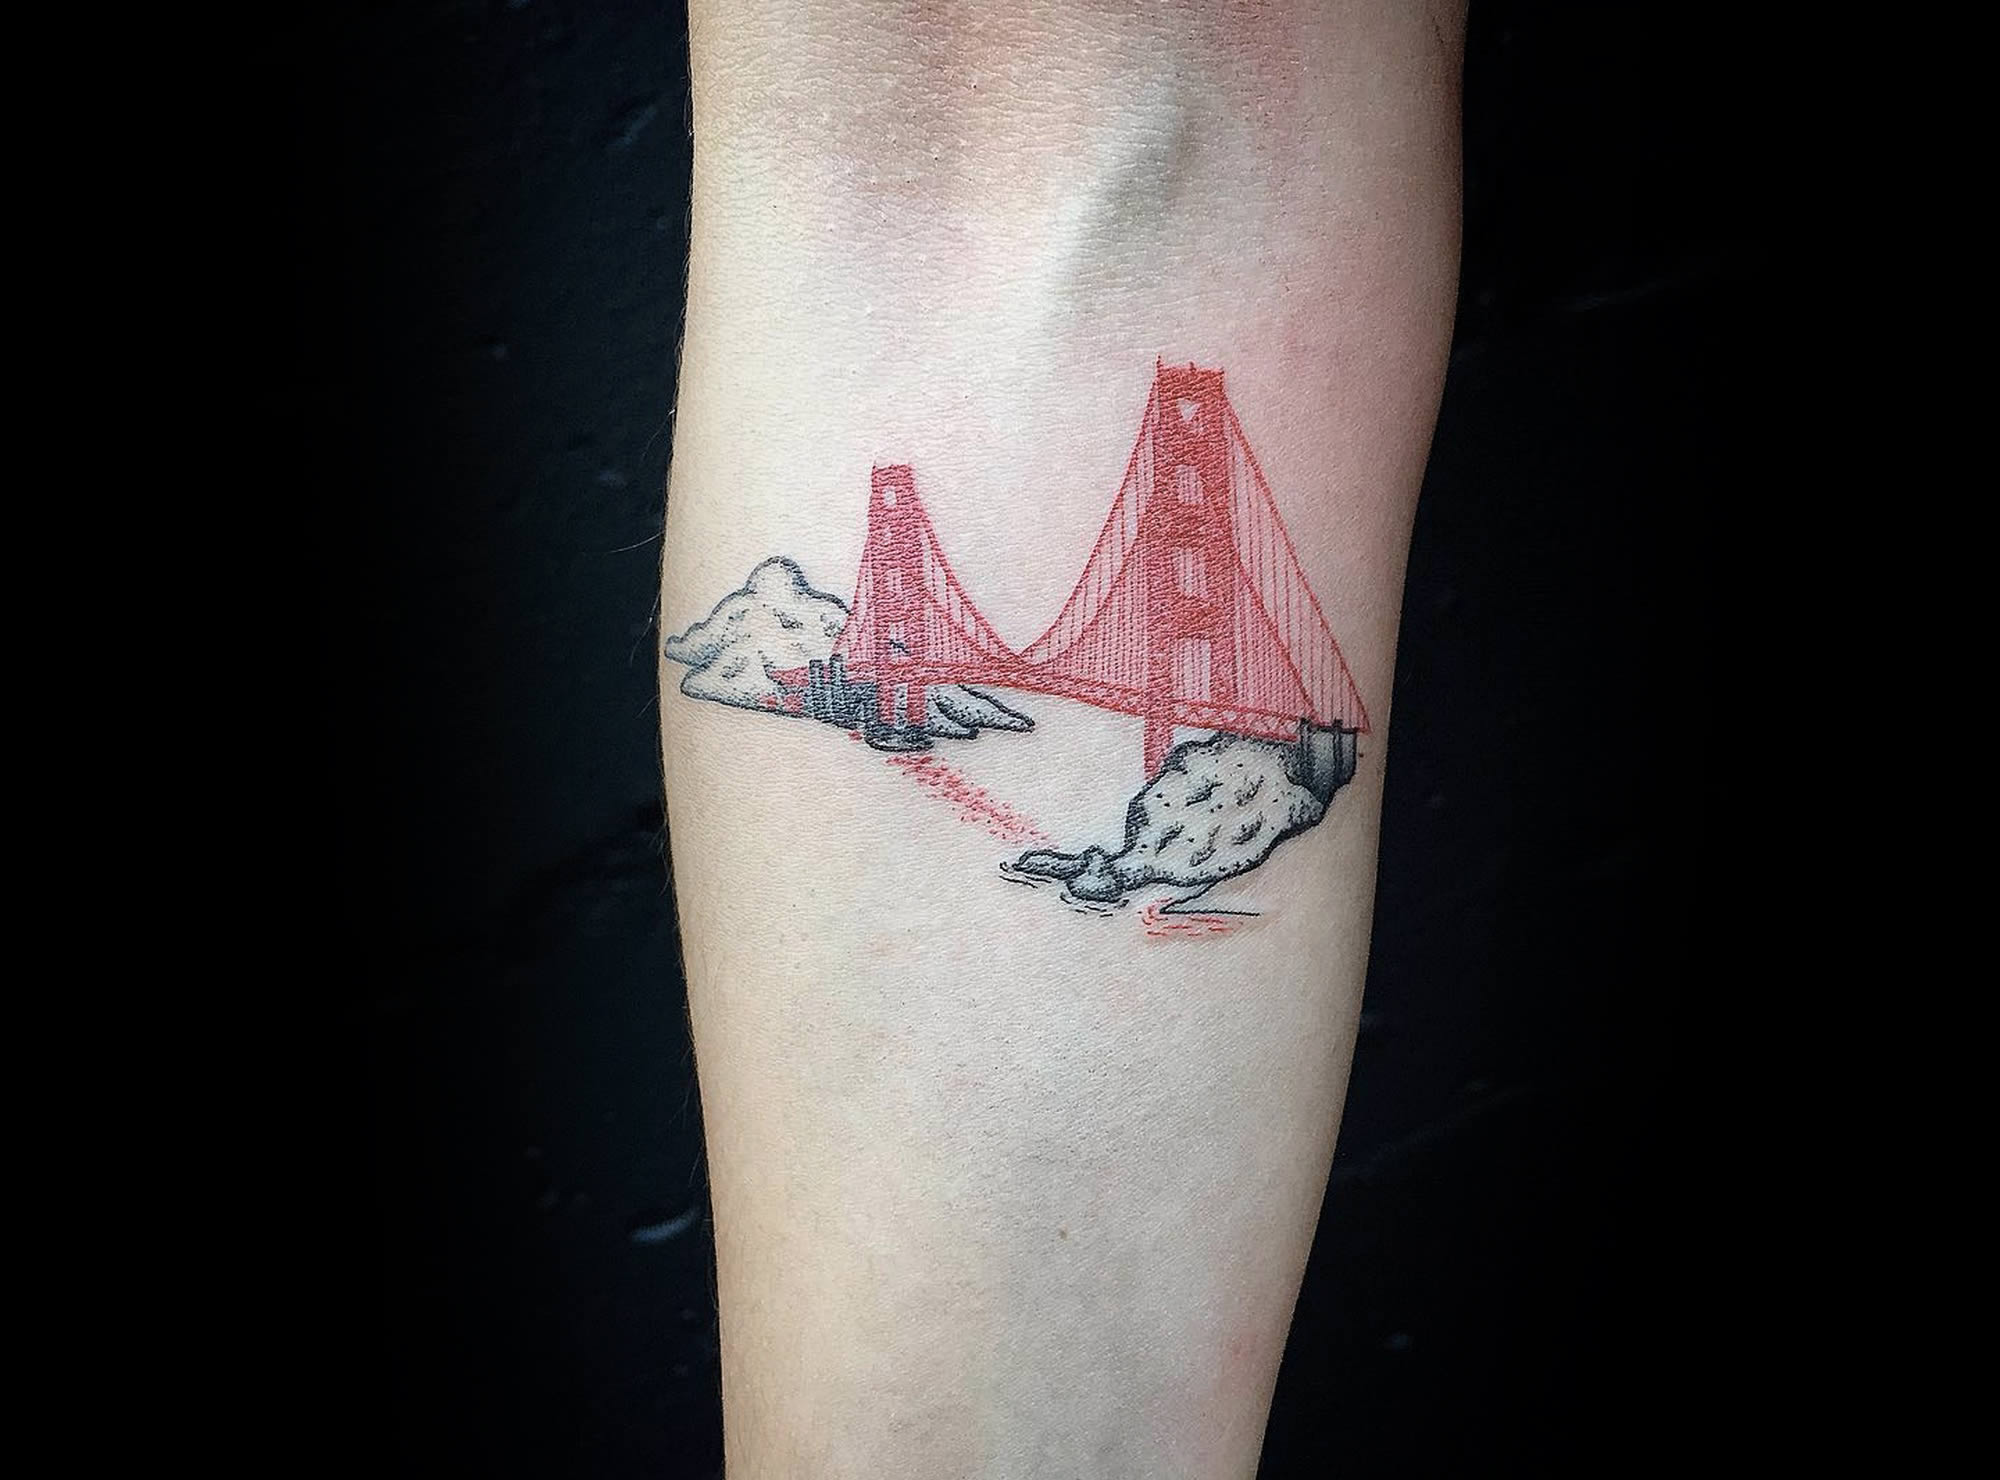 Single Needle Tattoos